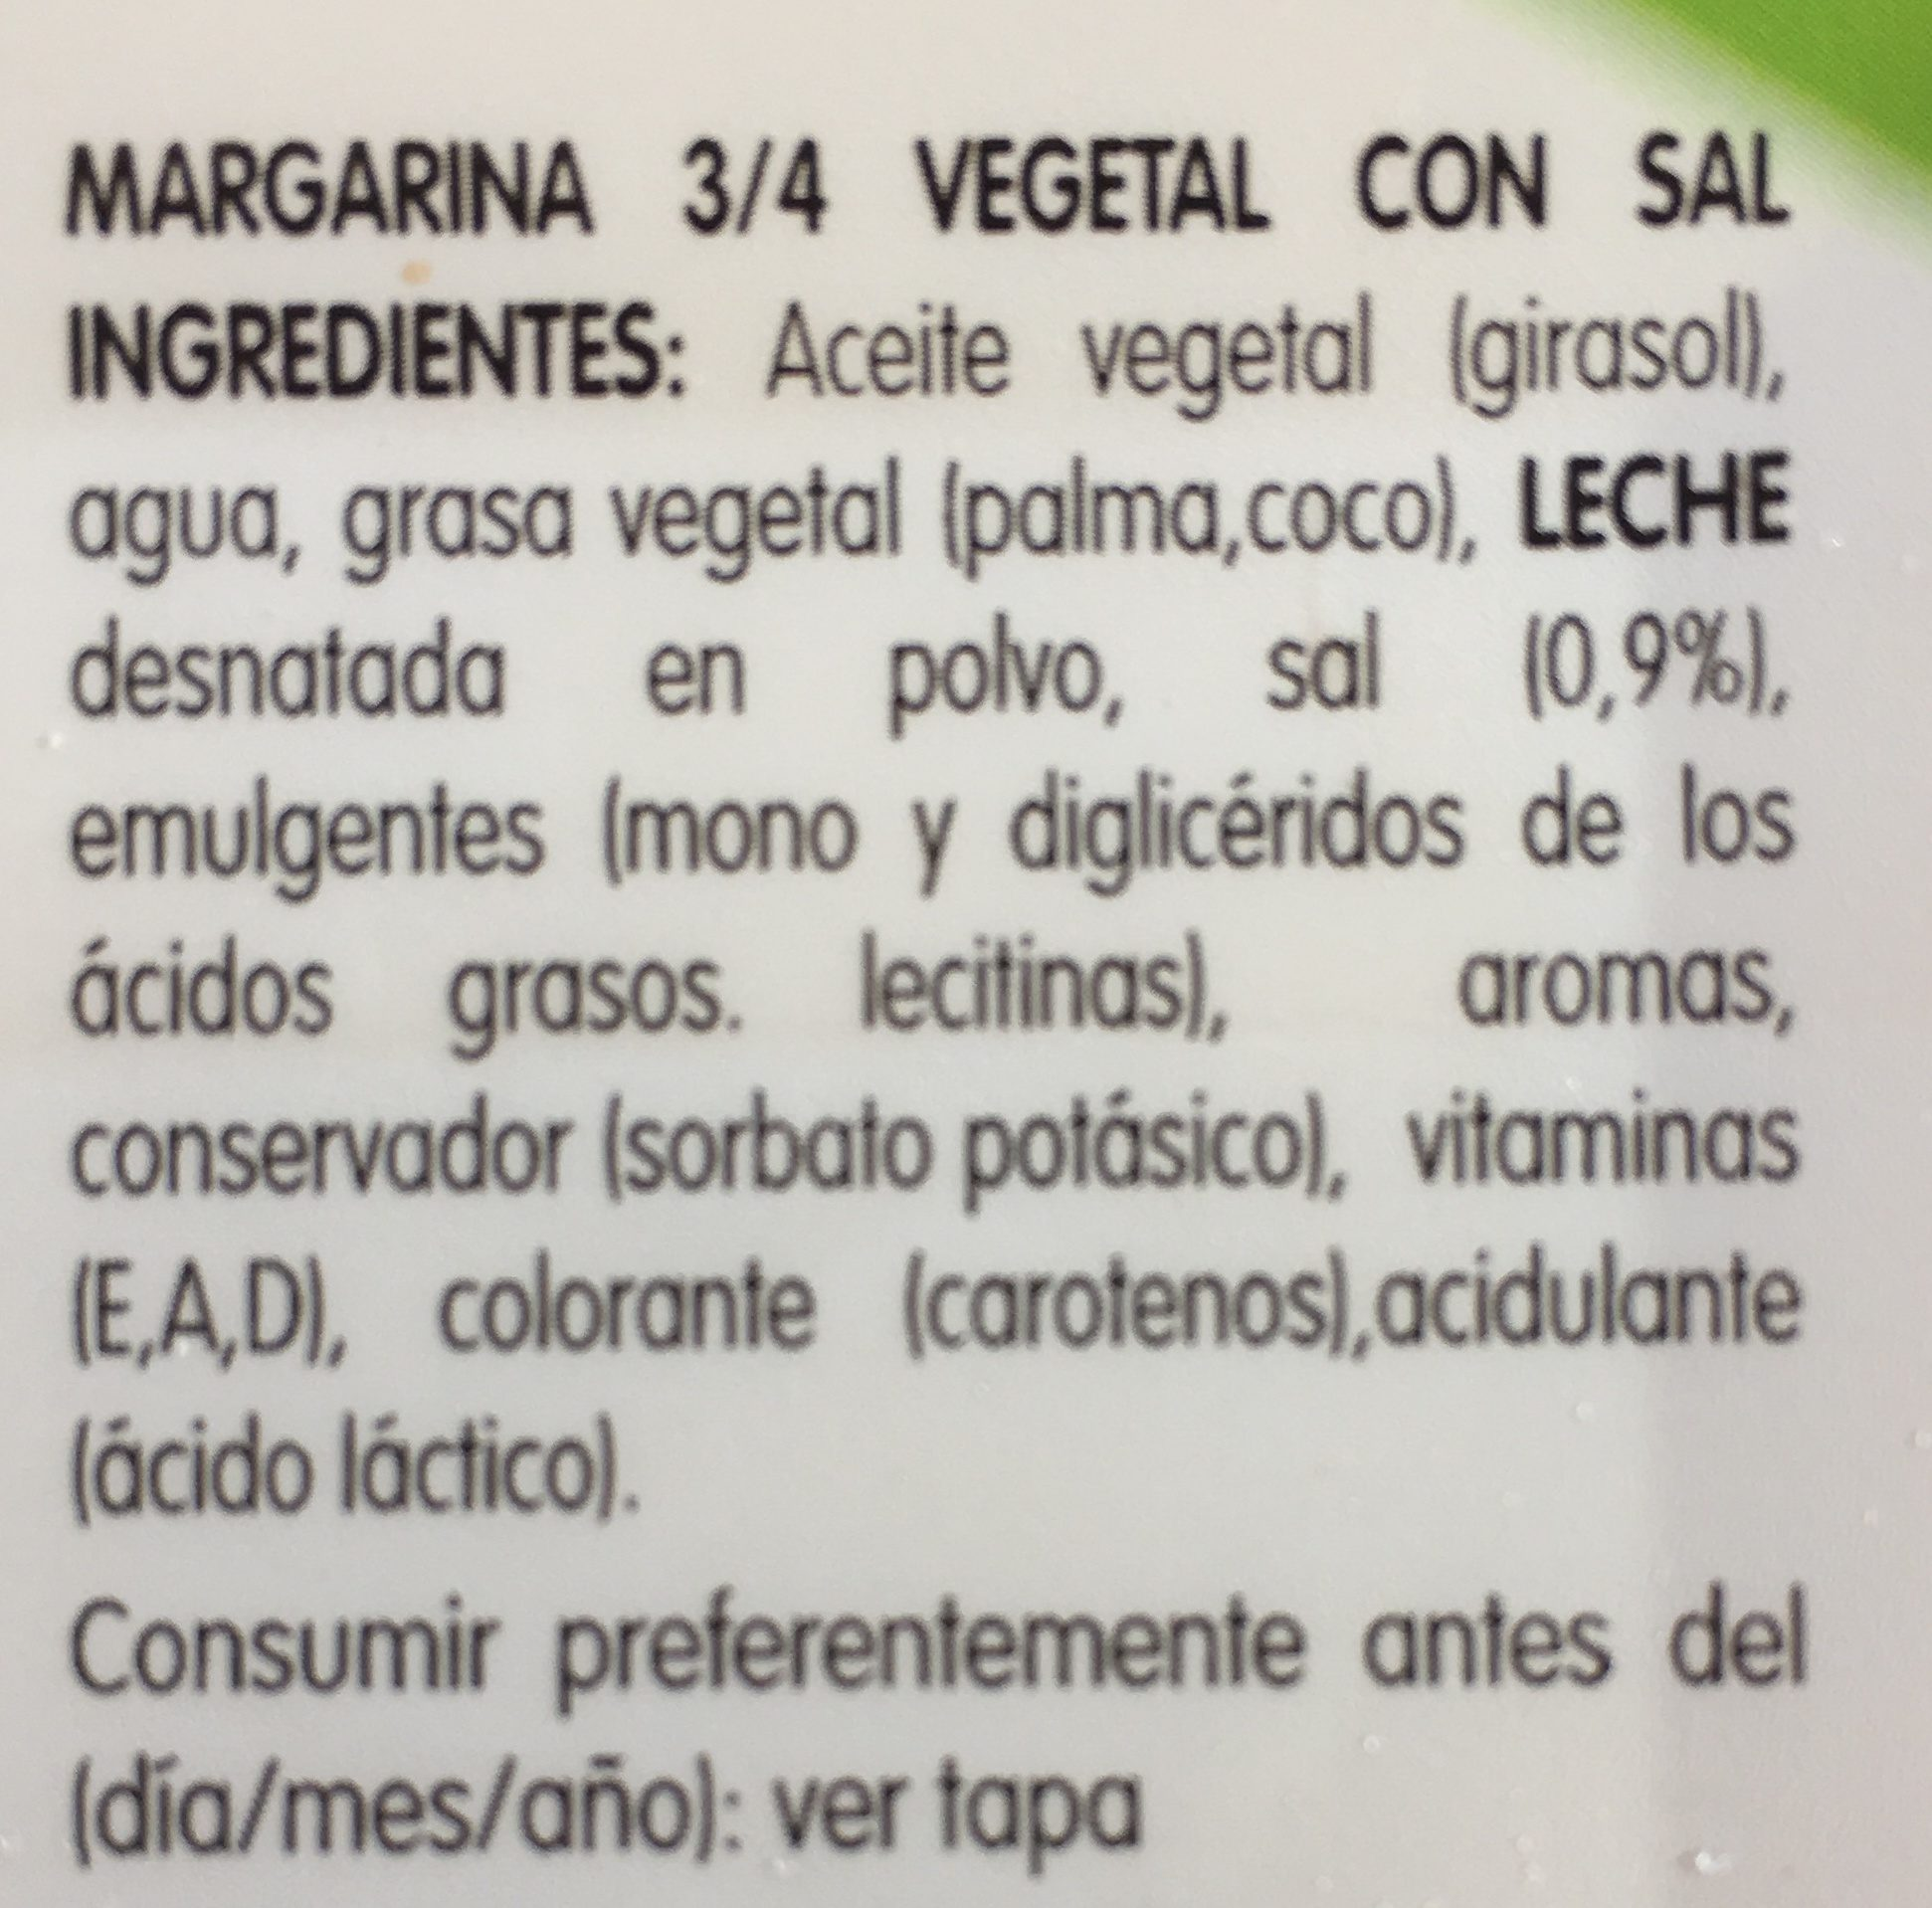 Margarina con sal - Ingredientes - es